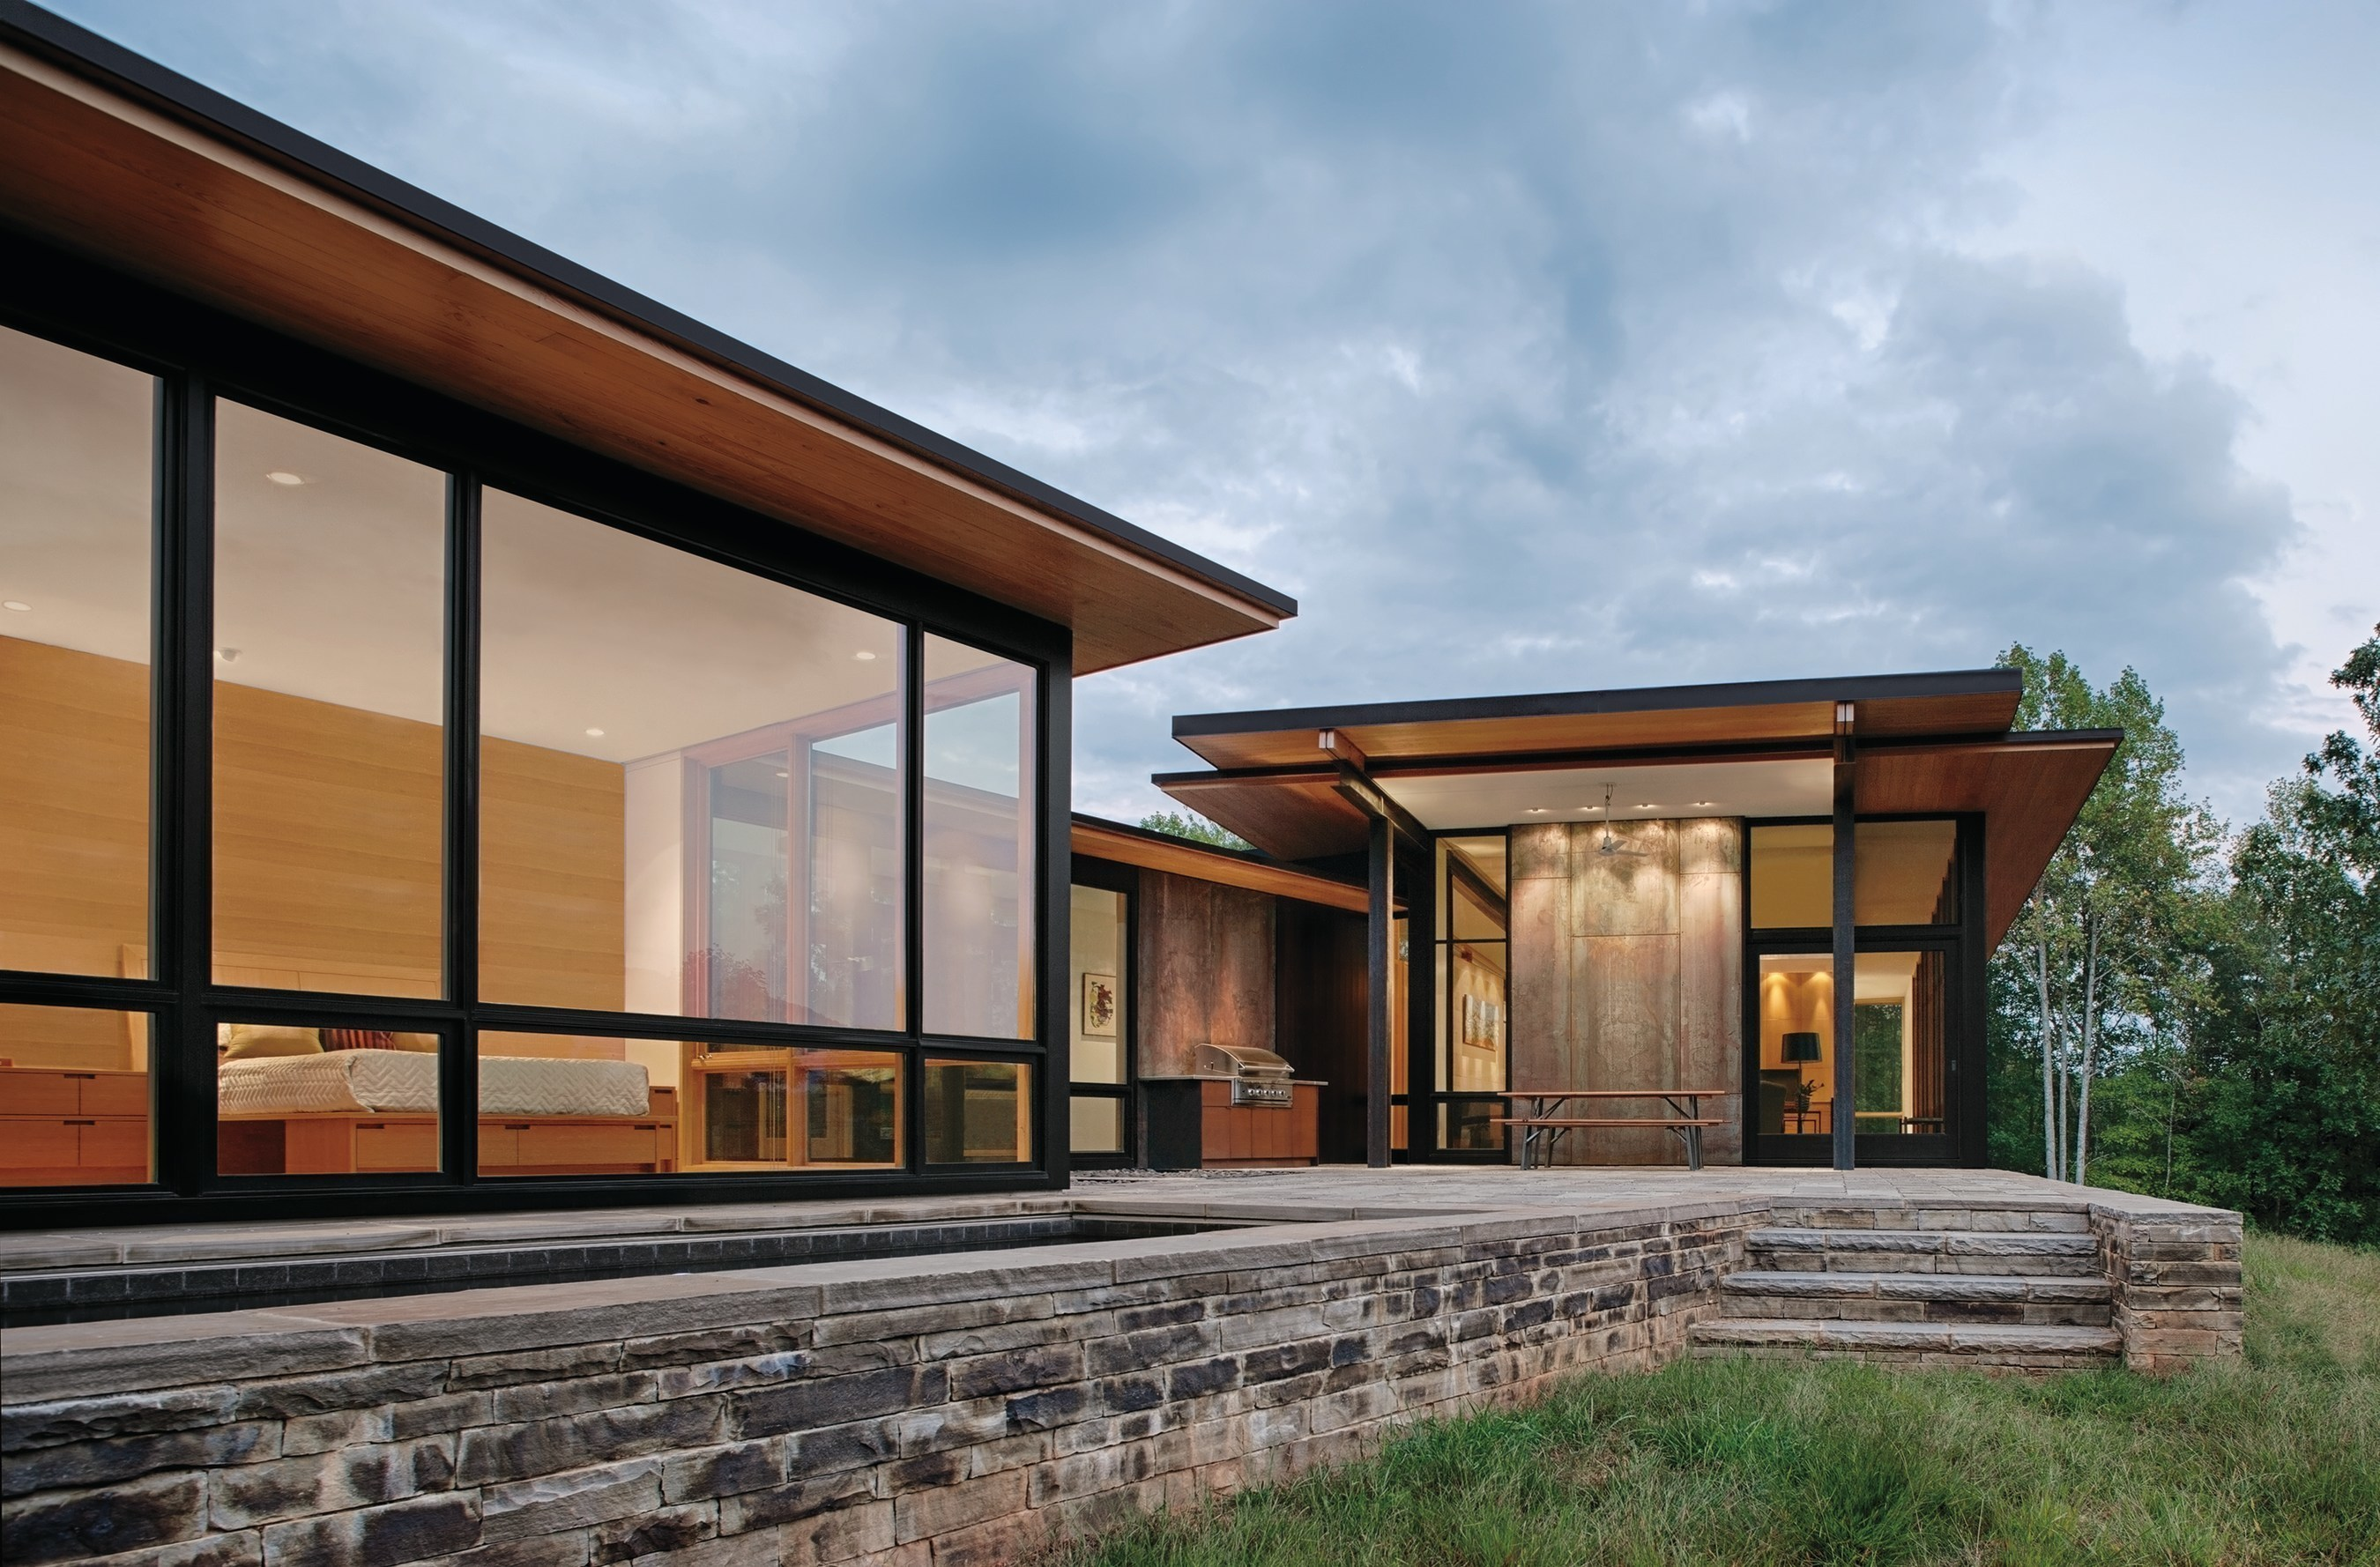 Marvin's Contemporary Studio uses products with features like clean lines, large expanses of glass and narrow profiles.